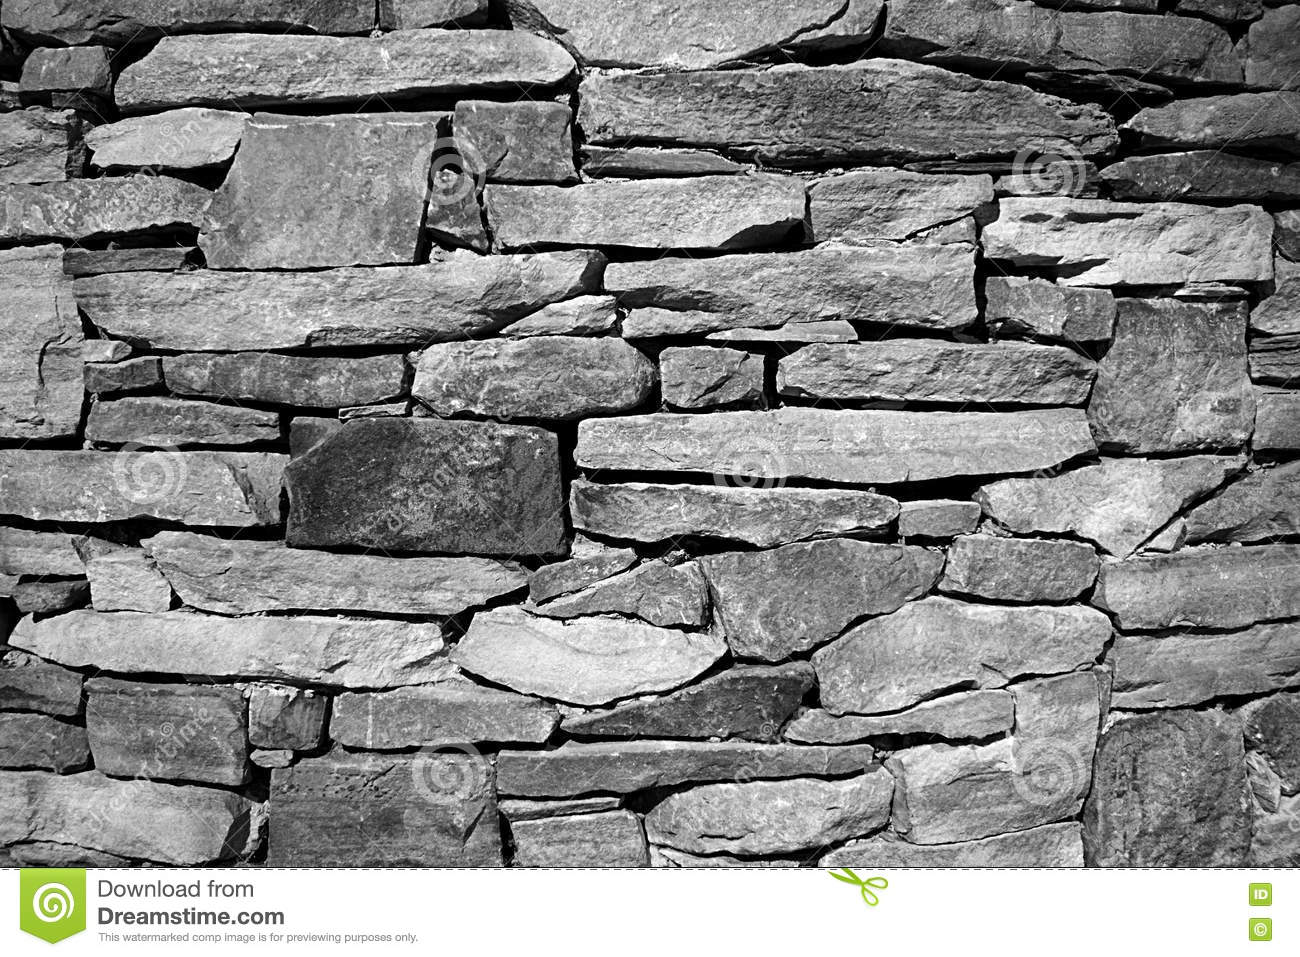 royaltyfree stock photo download dry stacked stone